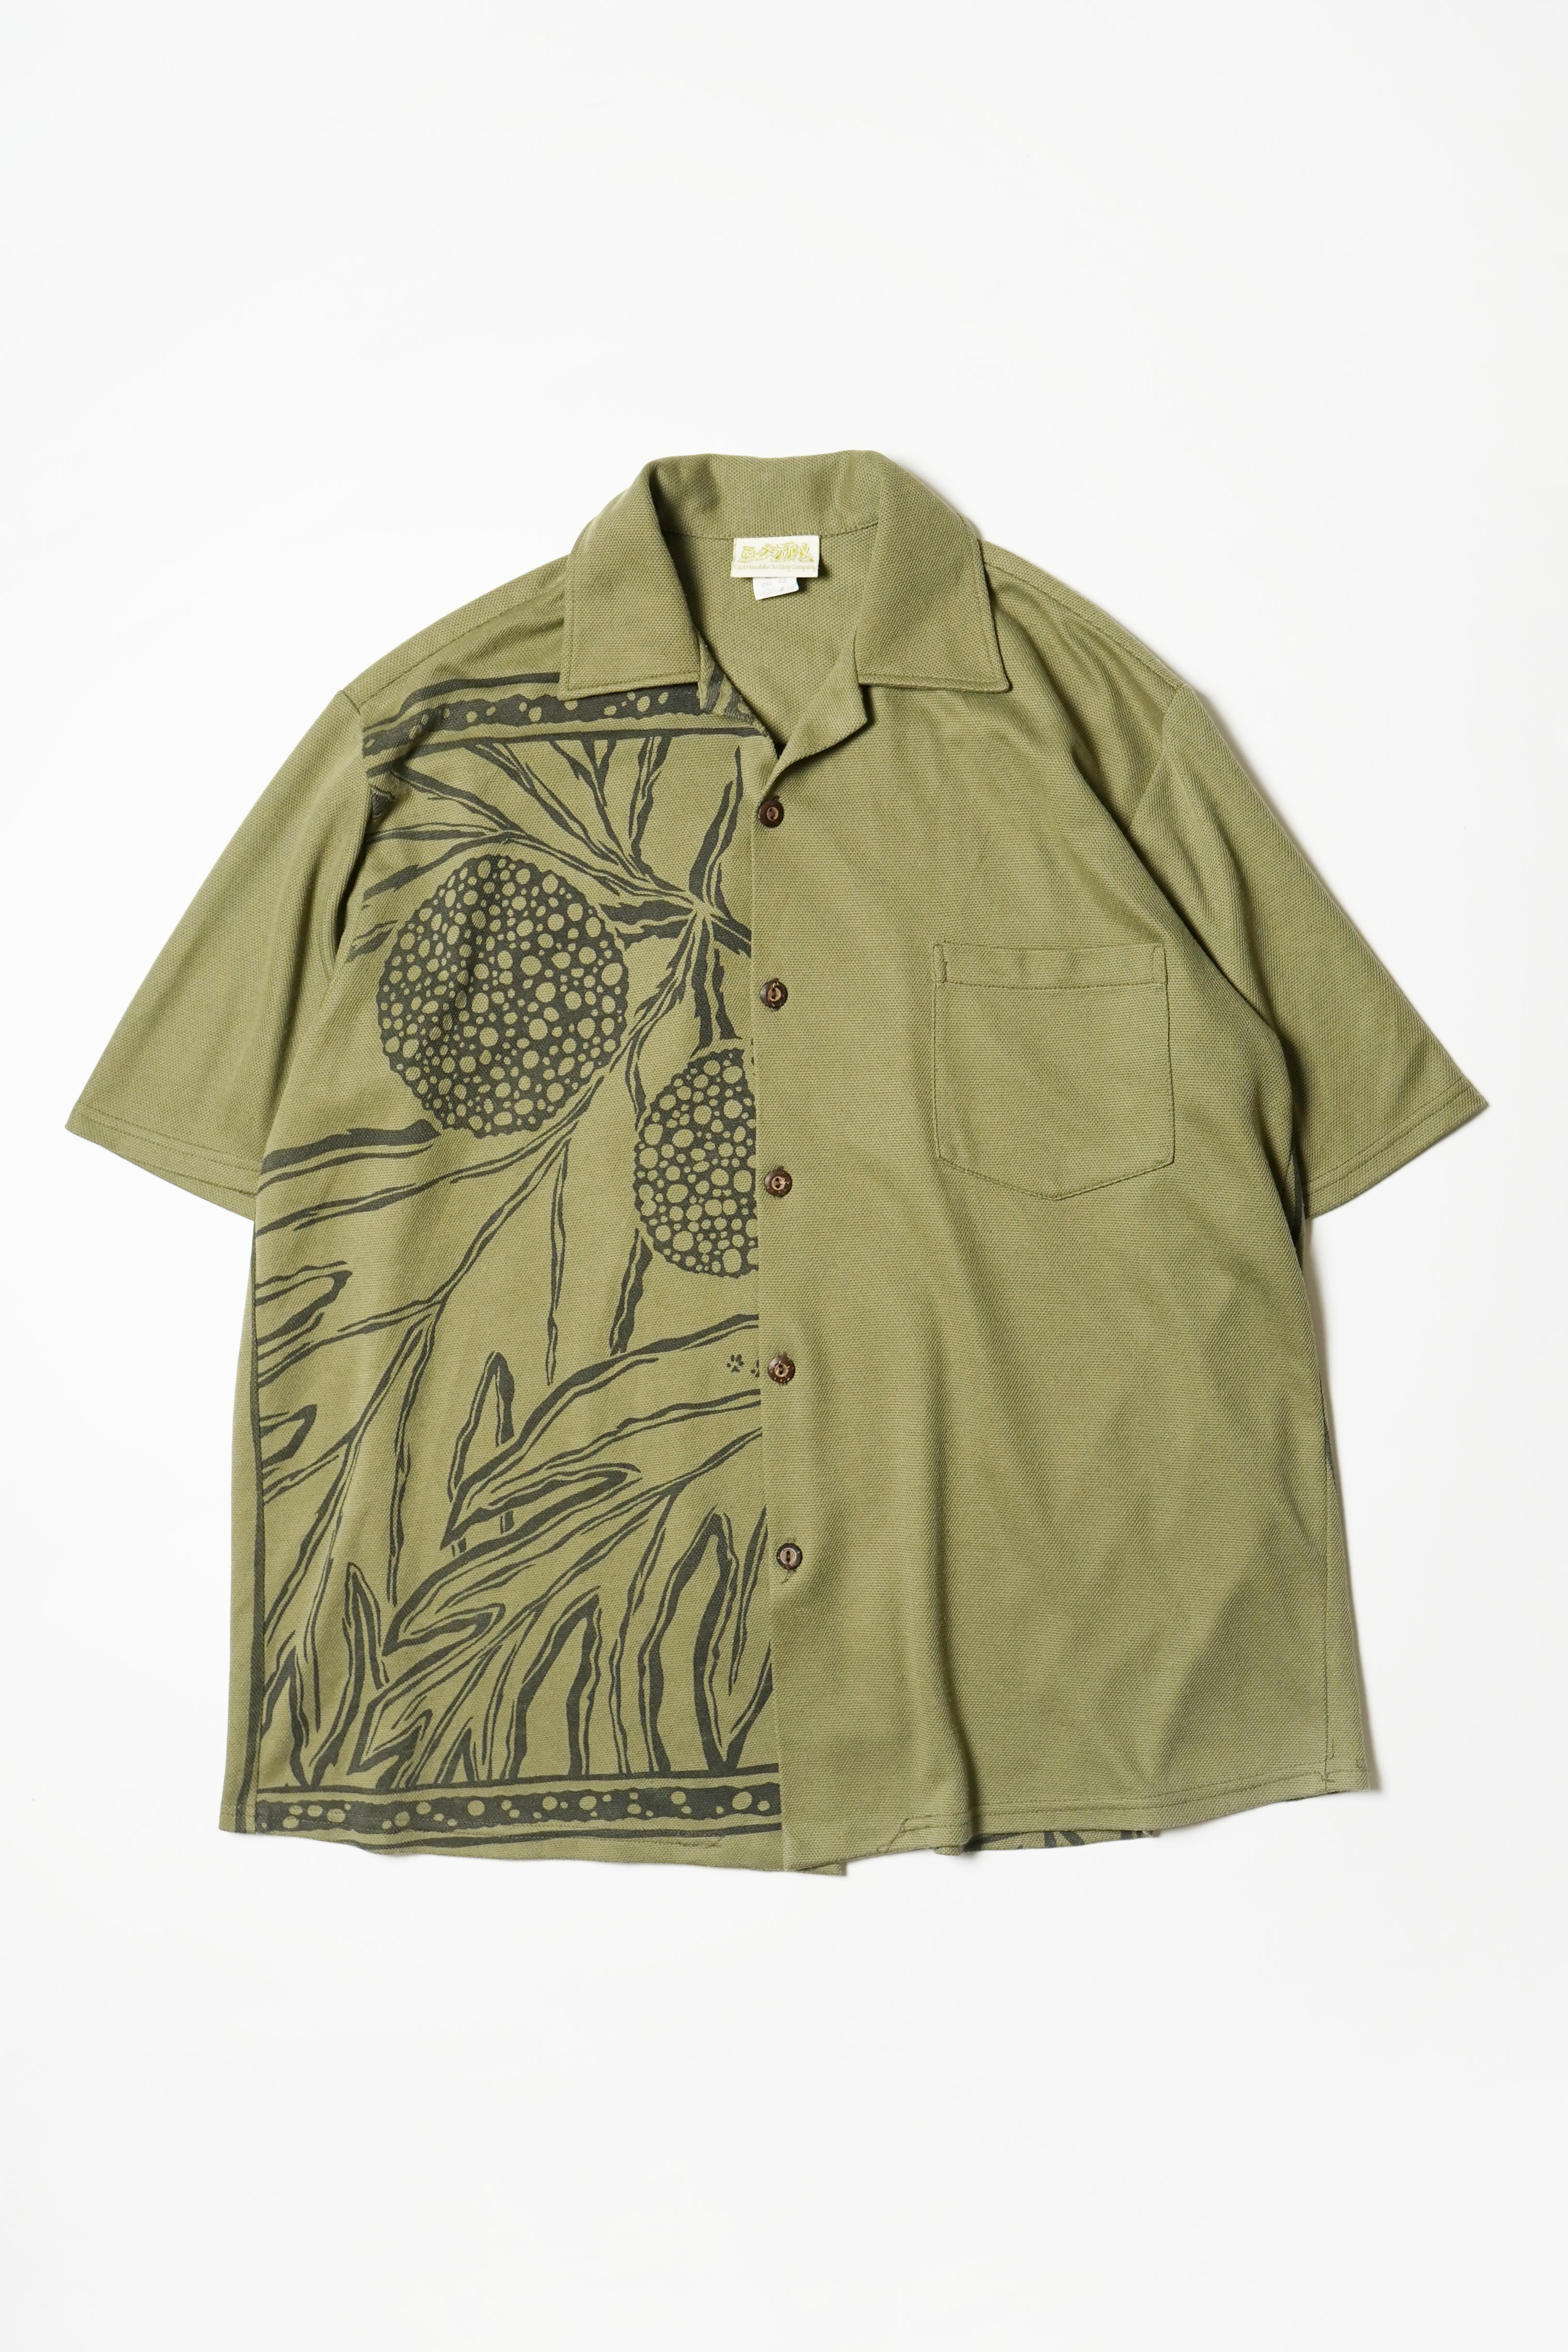 PRINTED DESIGN COTTON SHIRTS